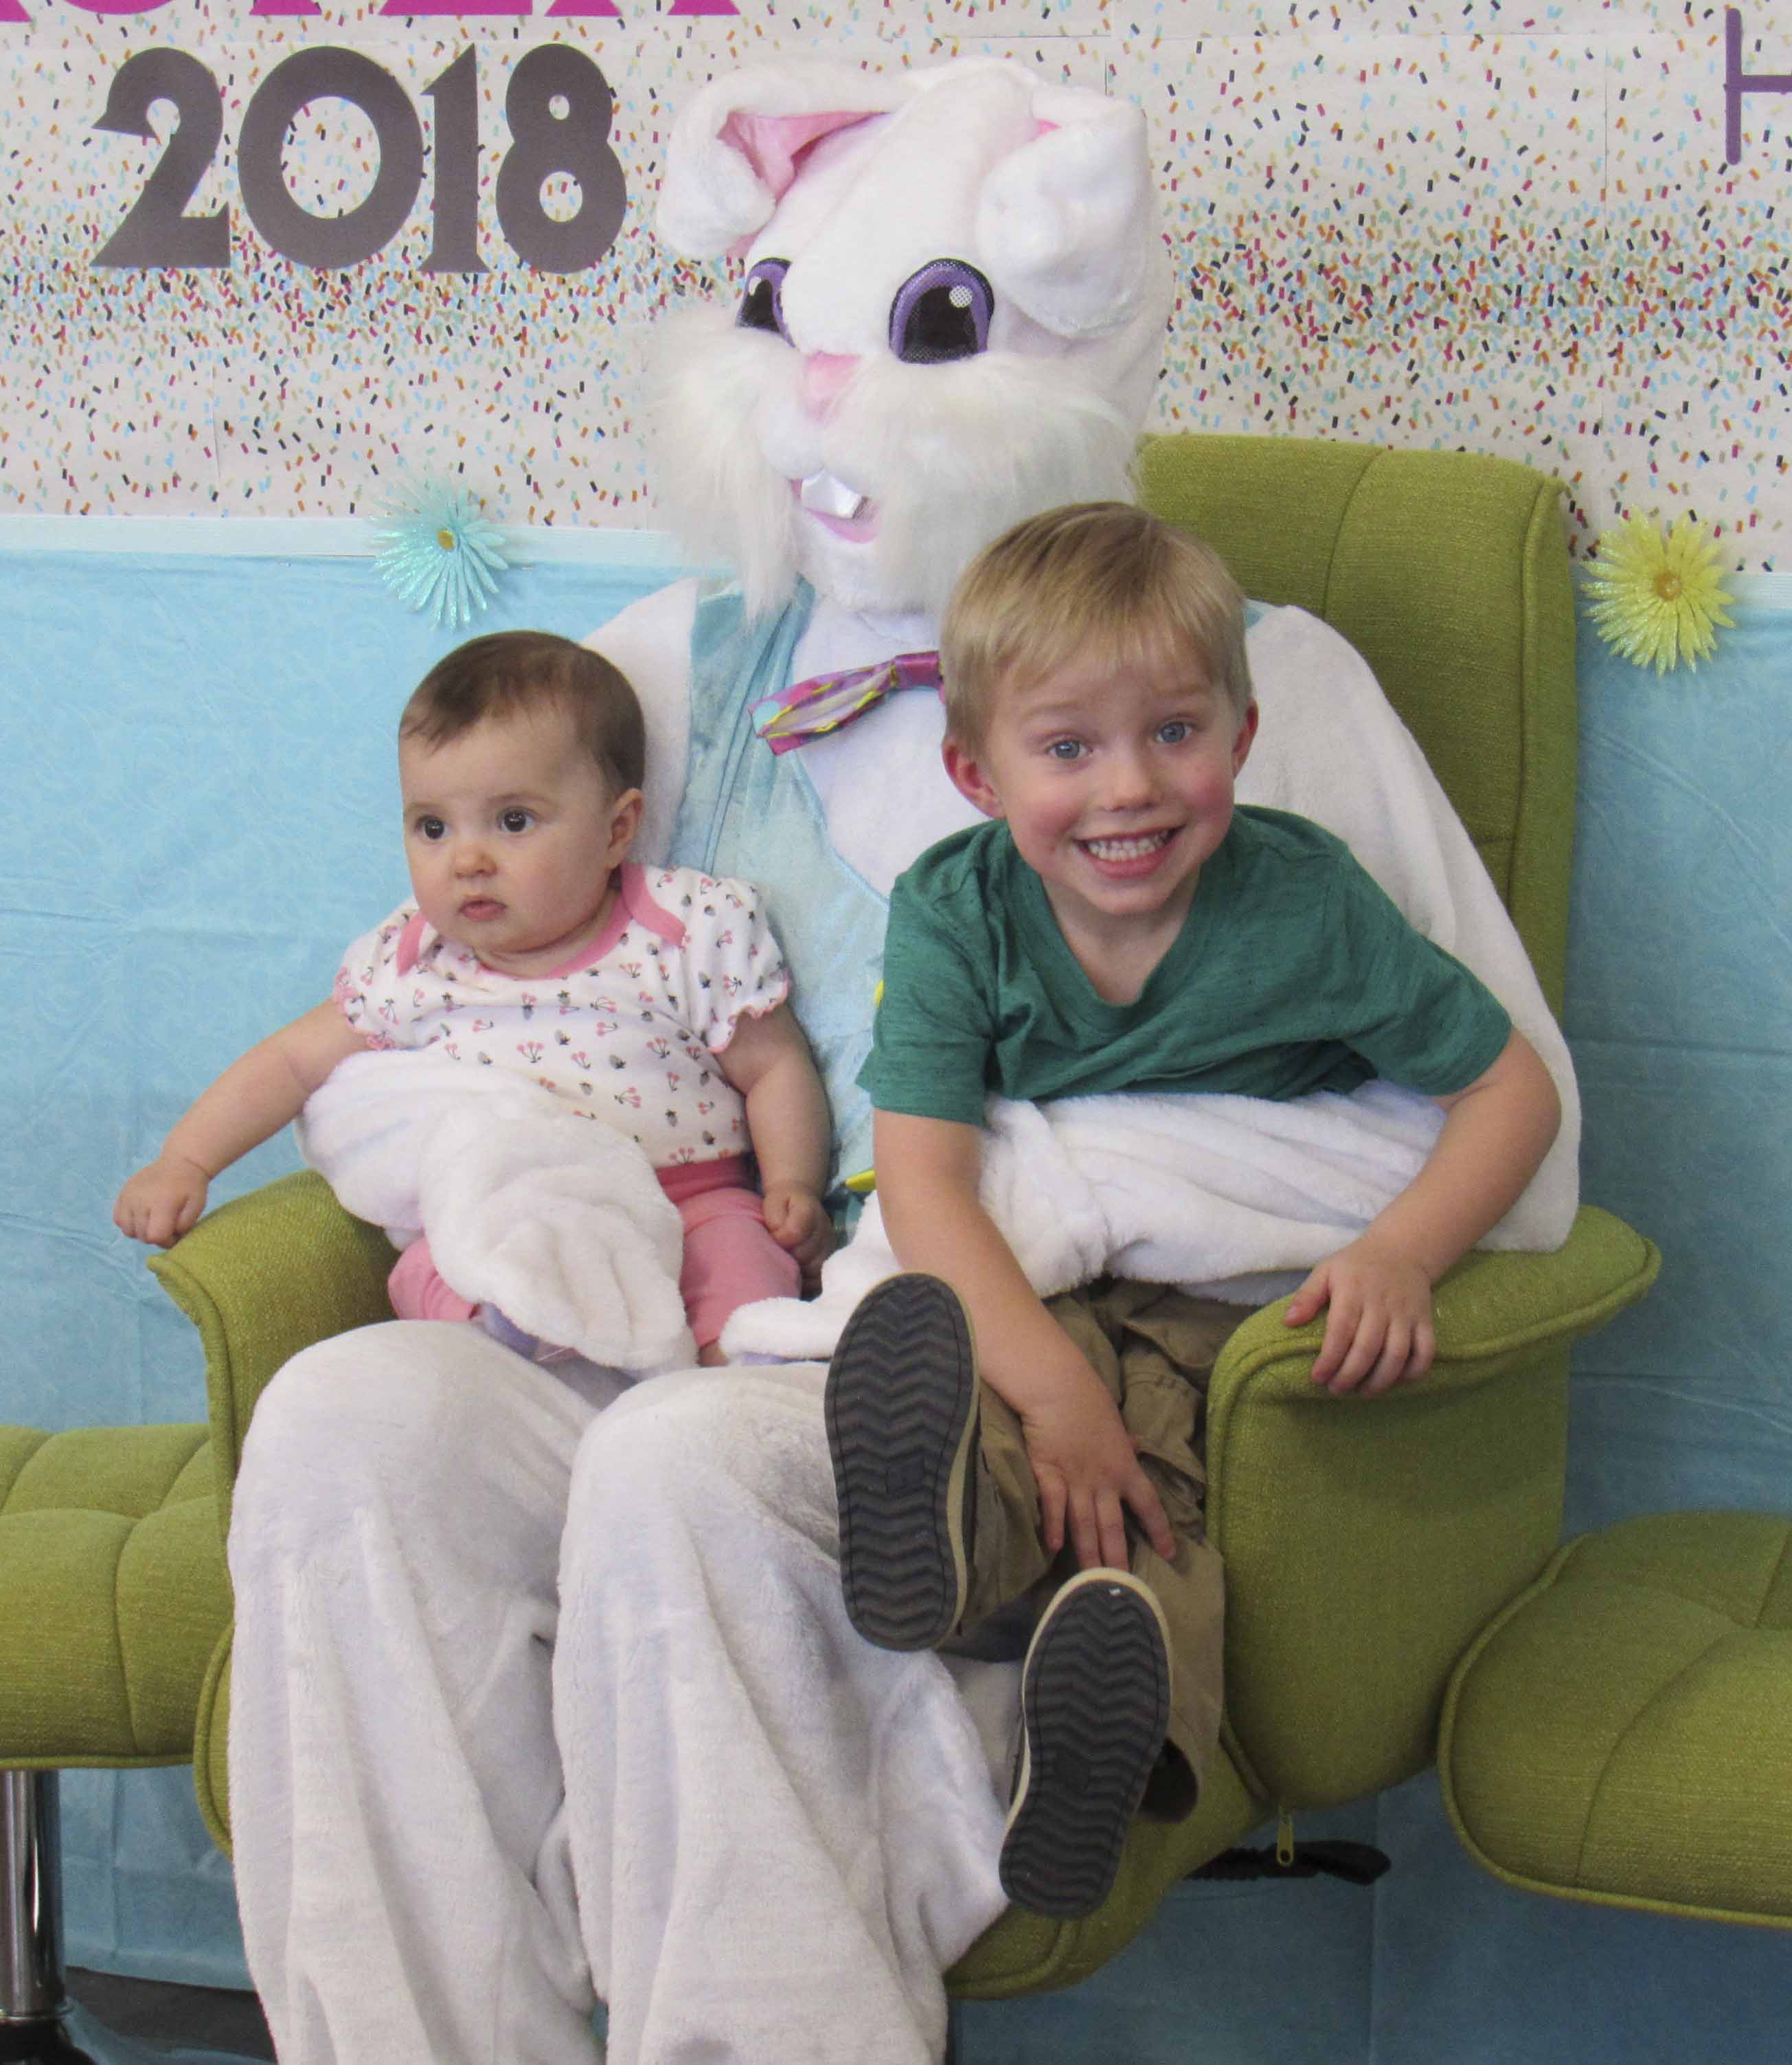 Sister and brother Finley Hunt, 6 months, and Graham Hunt, 3 years old, were excited to see the Easter Bunny last week. Their parents are Kaitlyn and Sam Hunt.